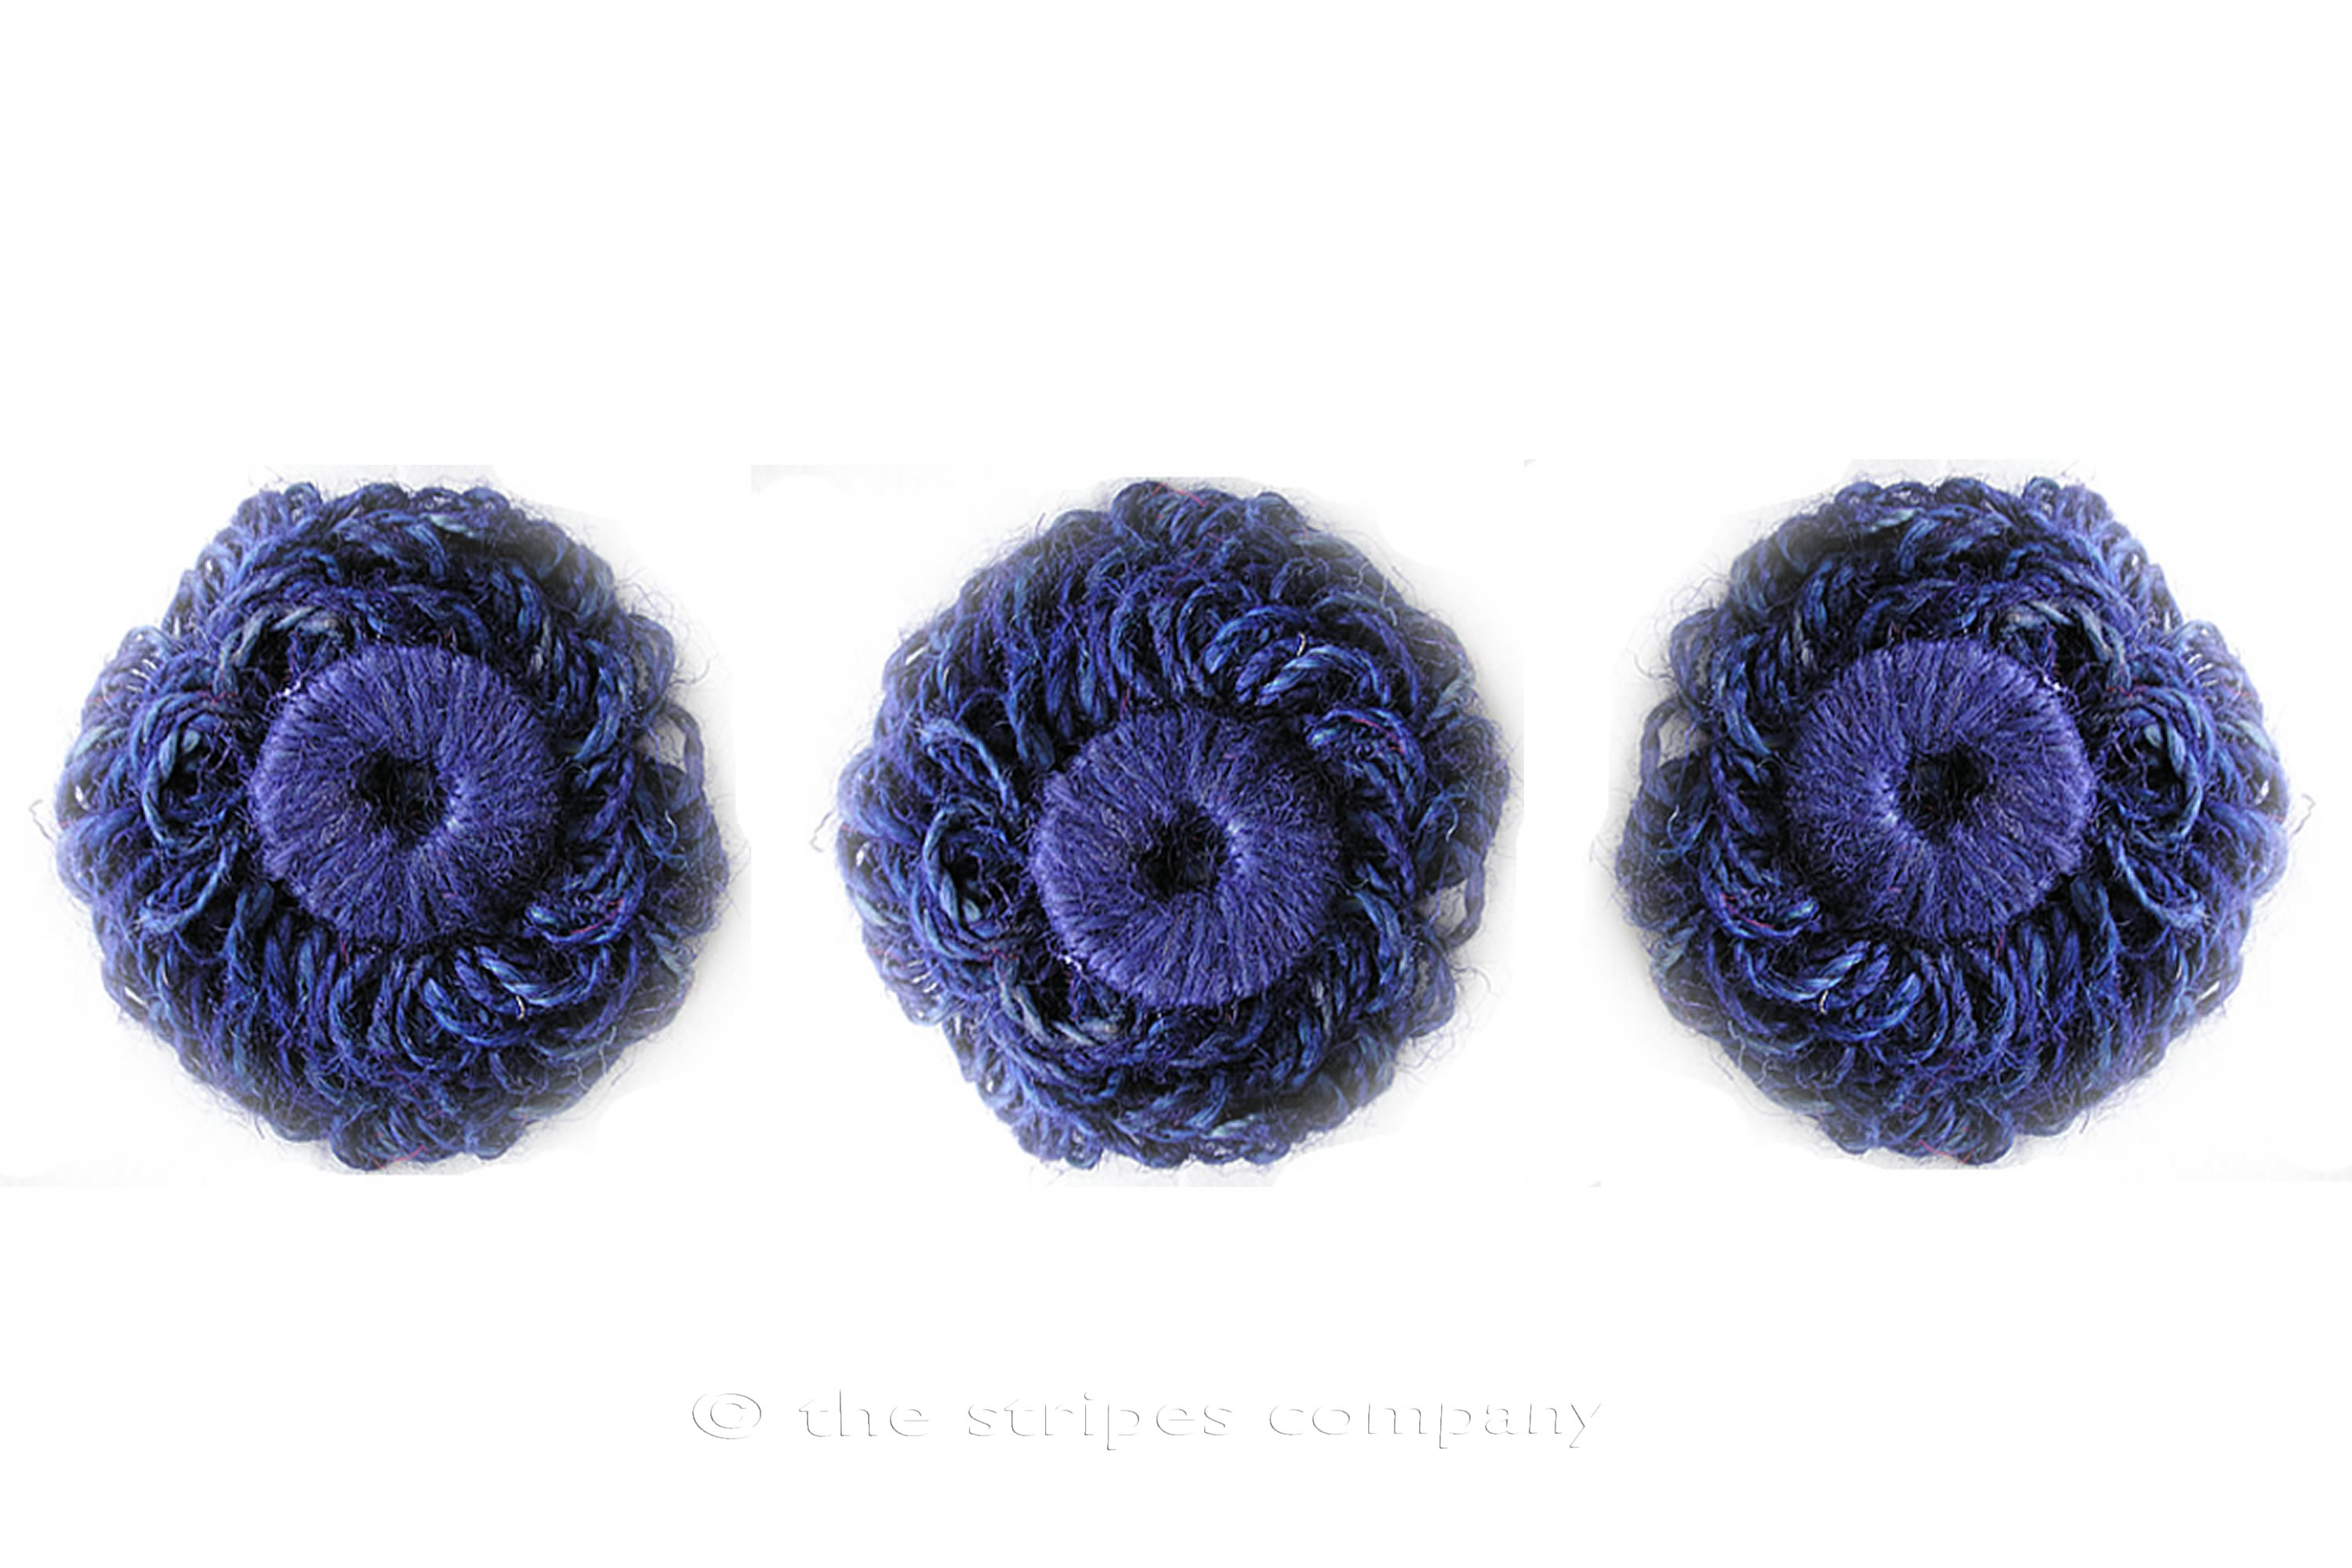 Blue Jute Flower Rosettes - Fabric Flowers - Fabric Rosettes Blue